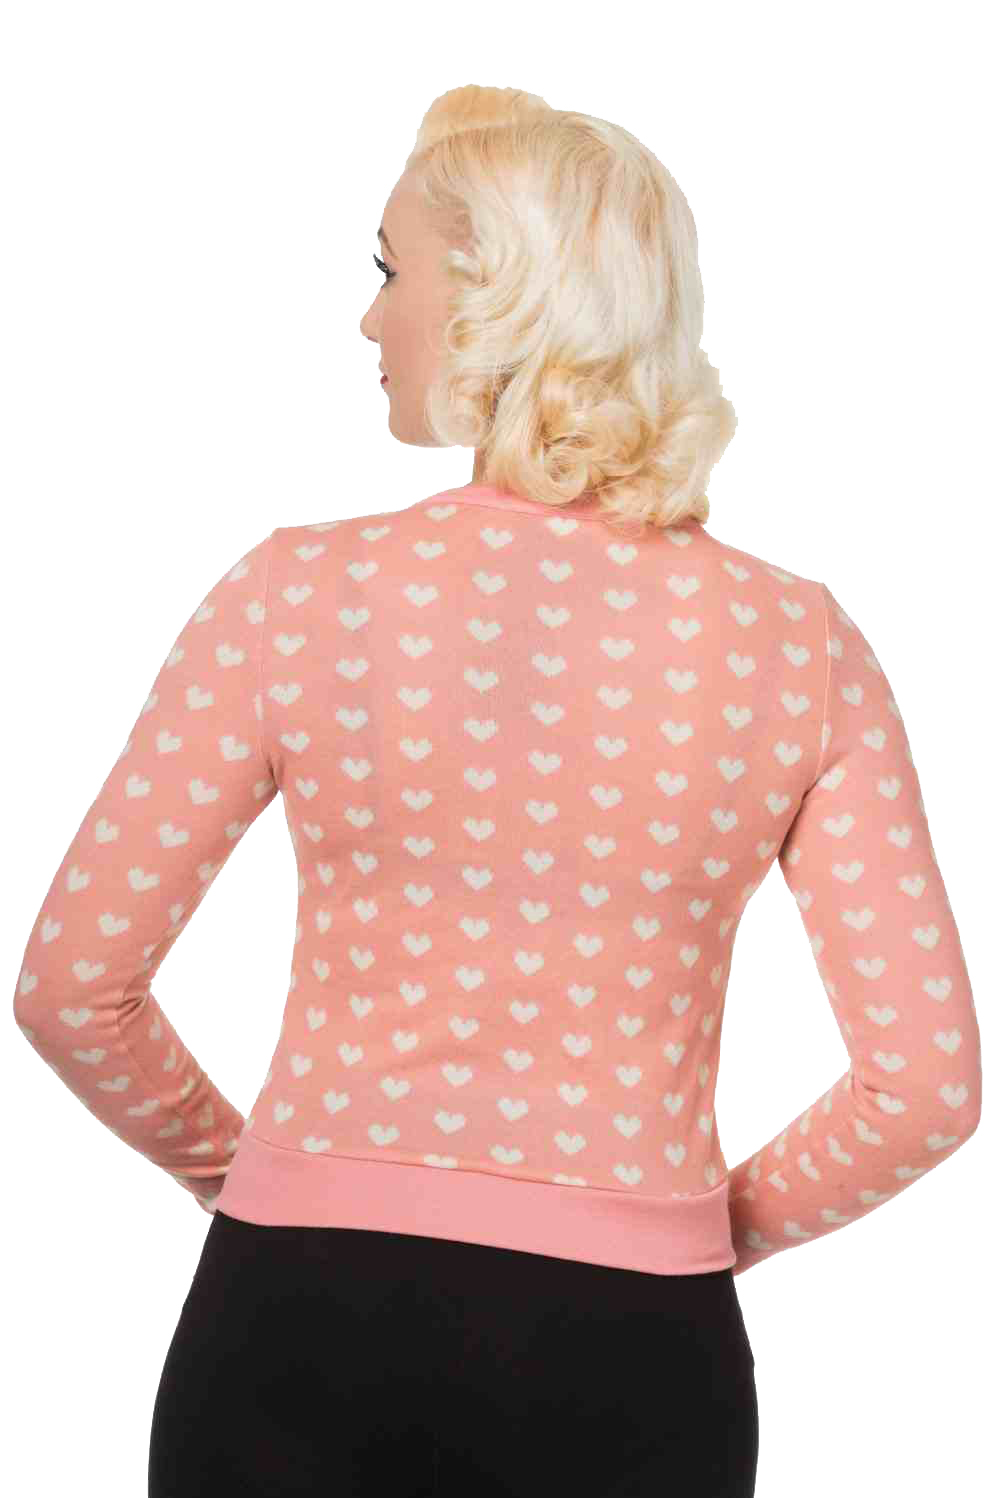 Banned Pink Lovehearts Cardigan